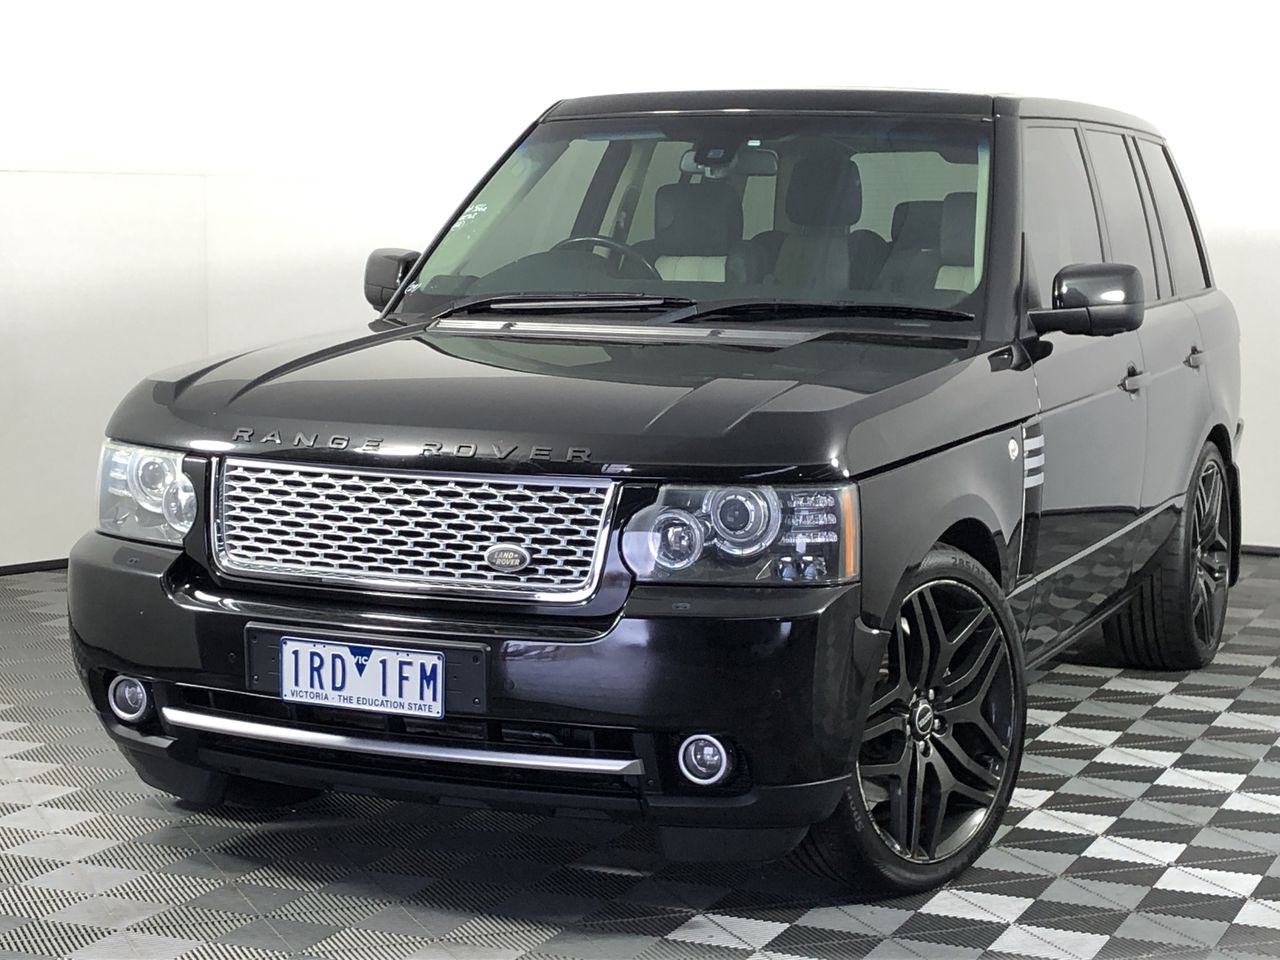 2010 Land Rover Range Rover Vogue S/C AUTO-BIOGRAPHY Automatic Wagon